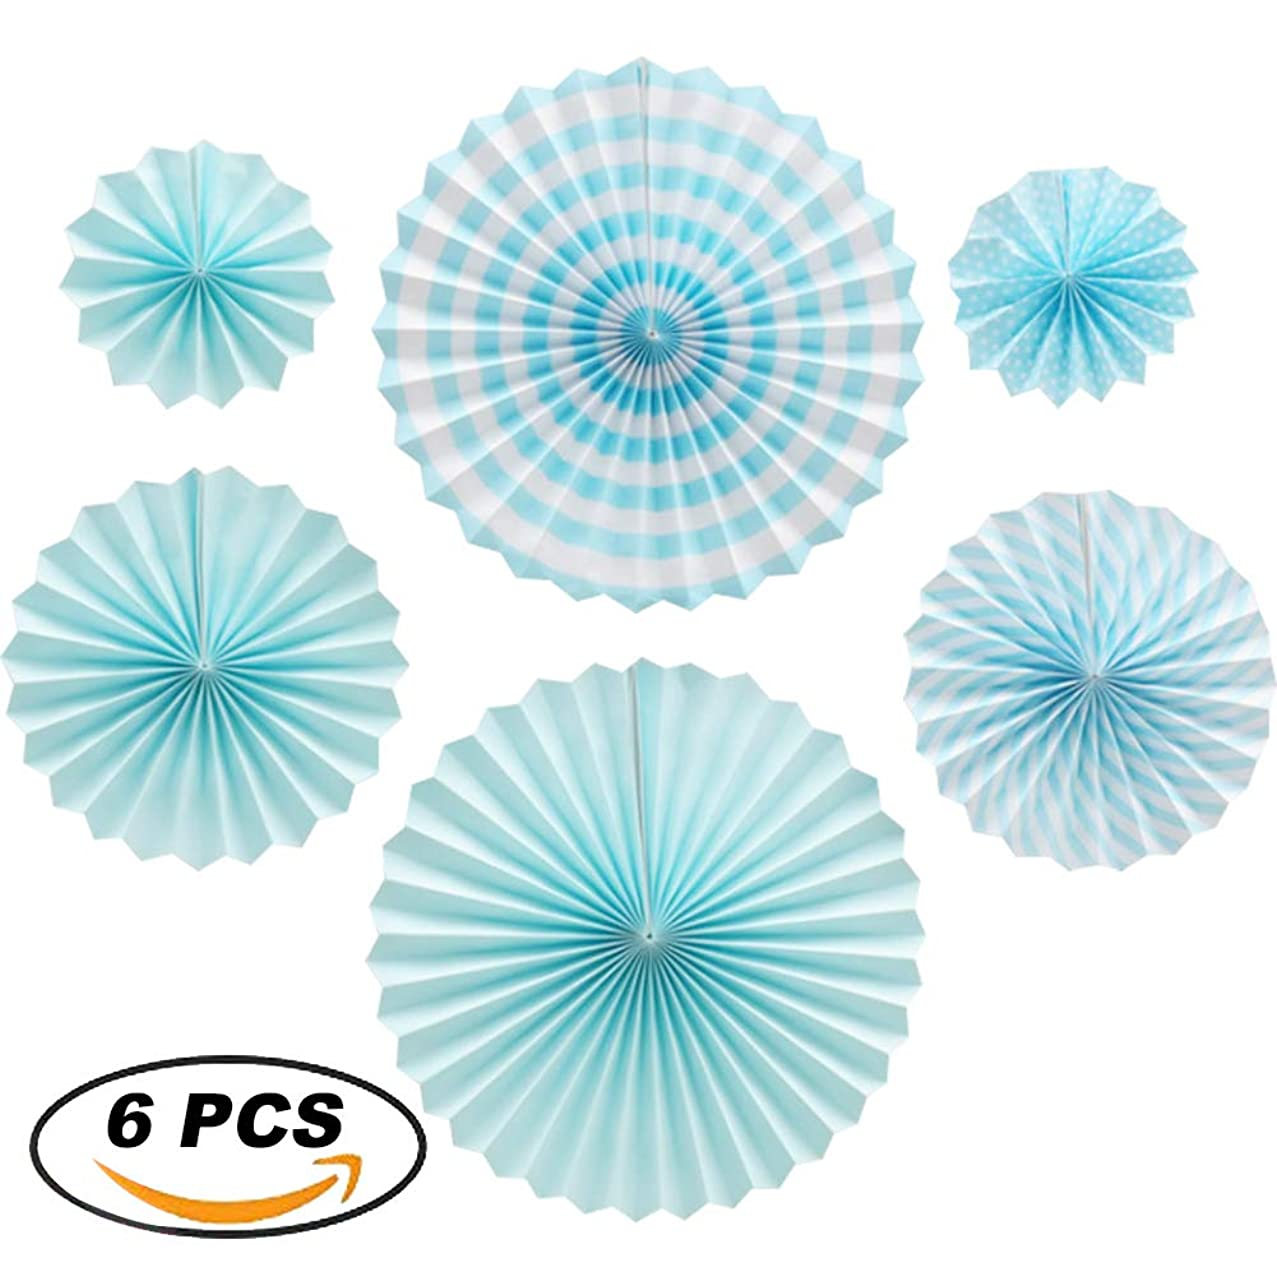 XYHOO Party Hanging Paper Fans Set, 6 pcs Blue Pattern Paper Garlands Decoration for Birthday Wedding Graduation Events Accessories. (Blue)